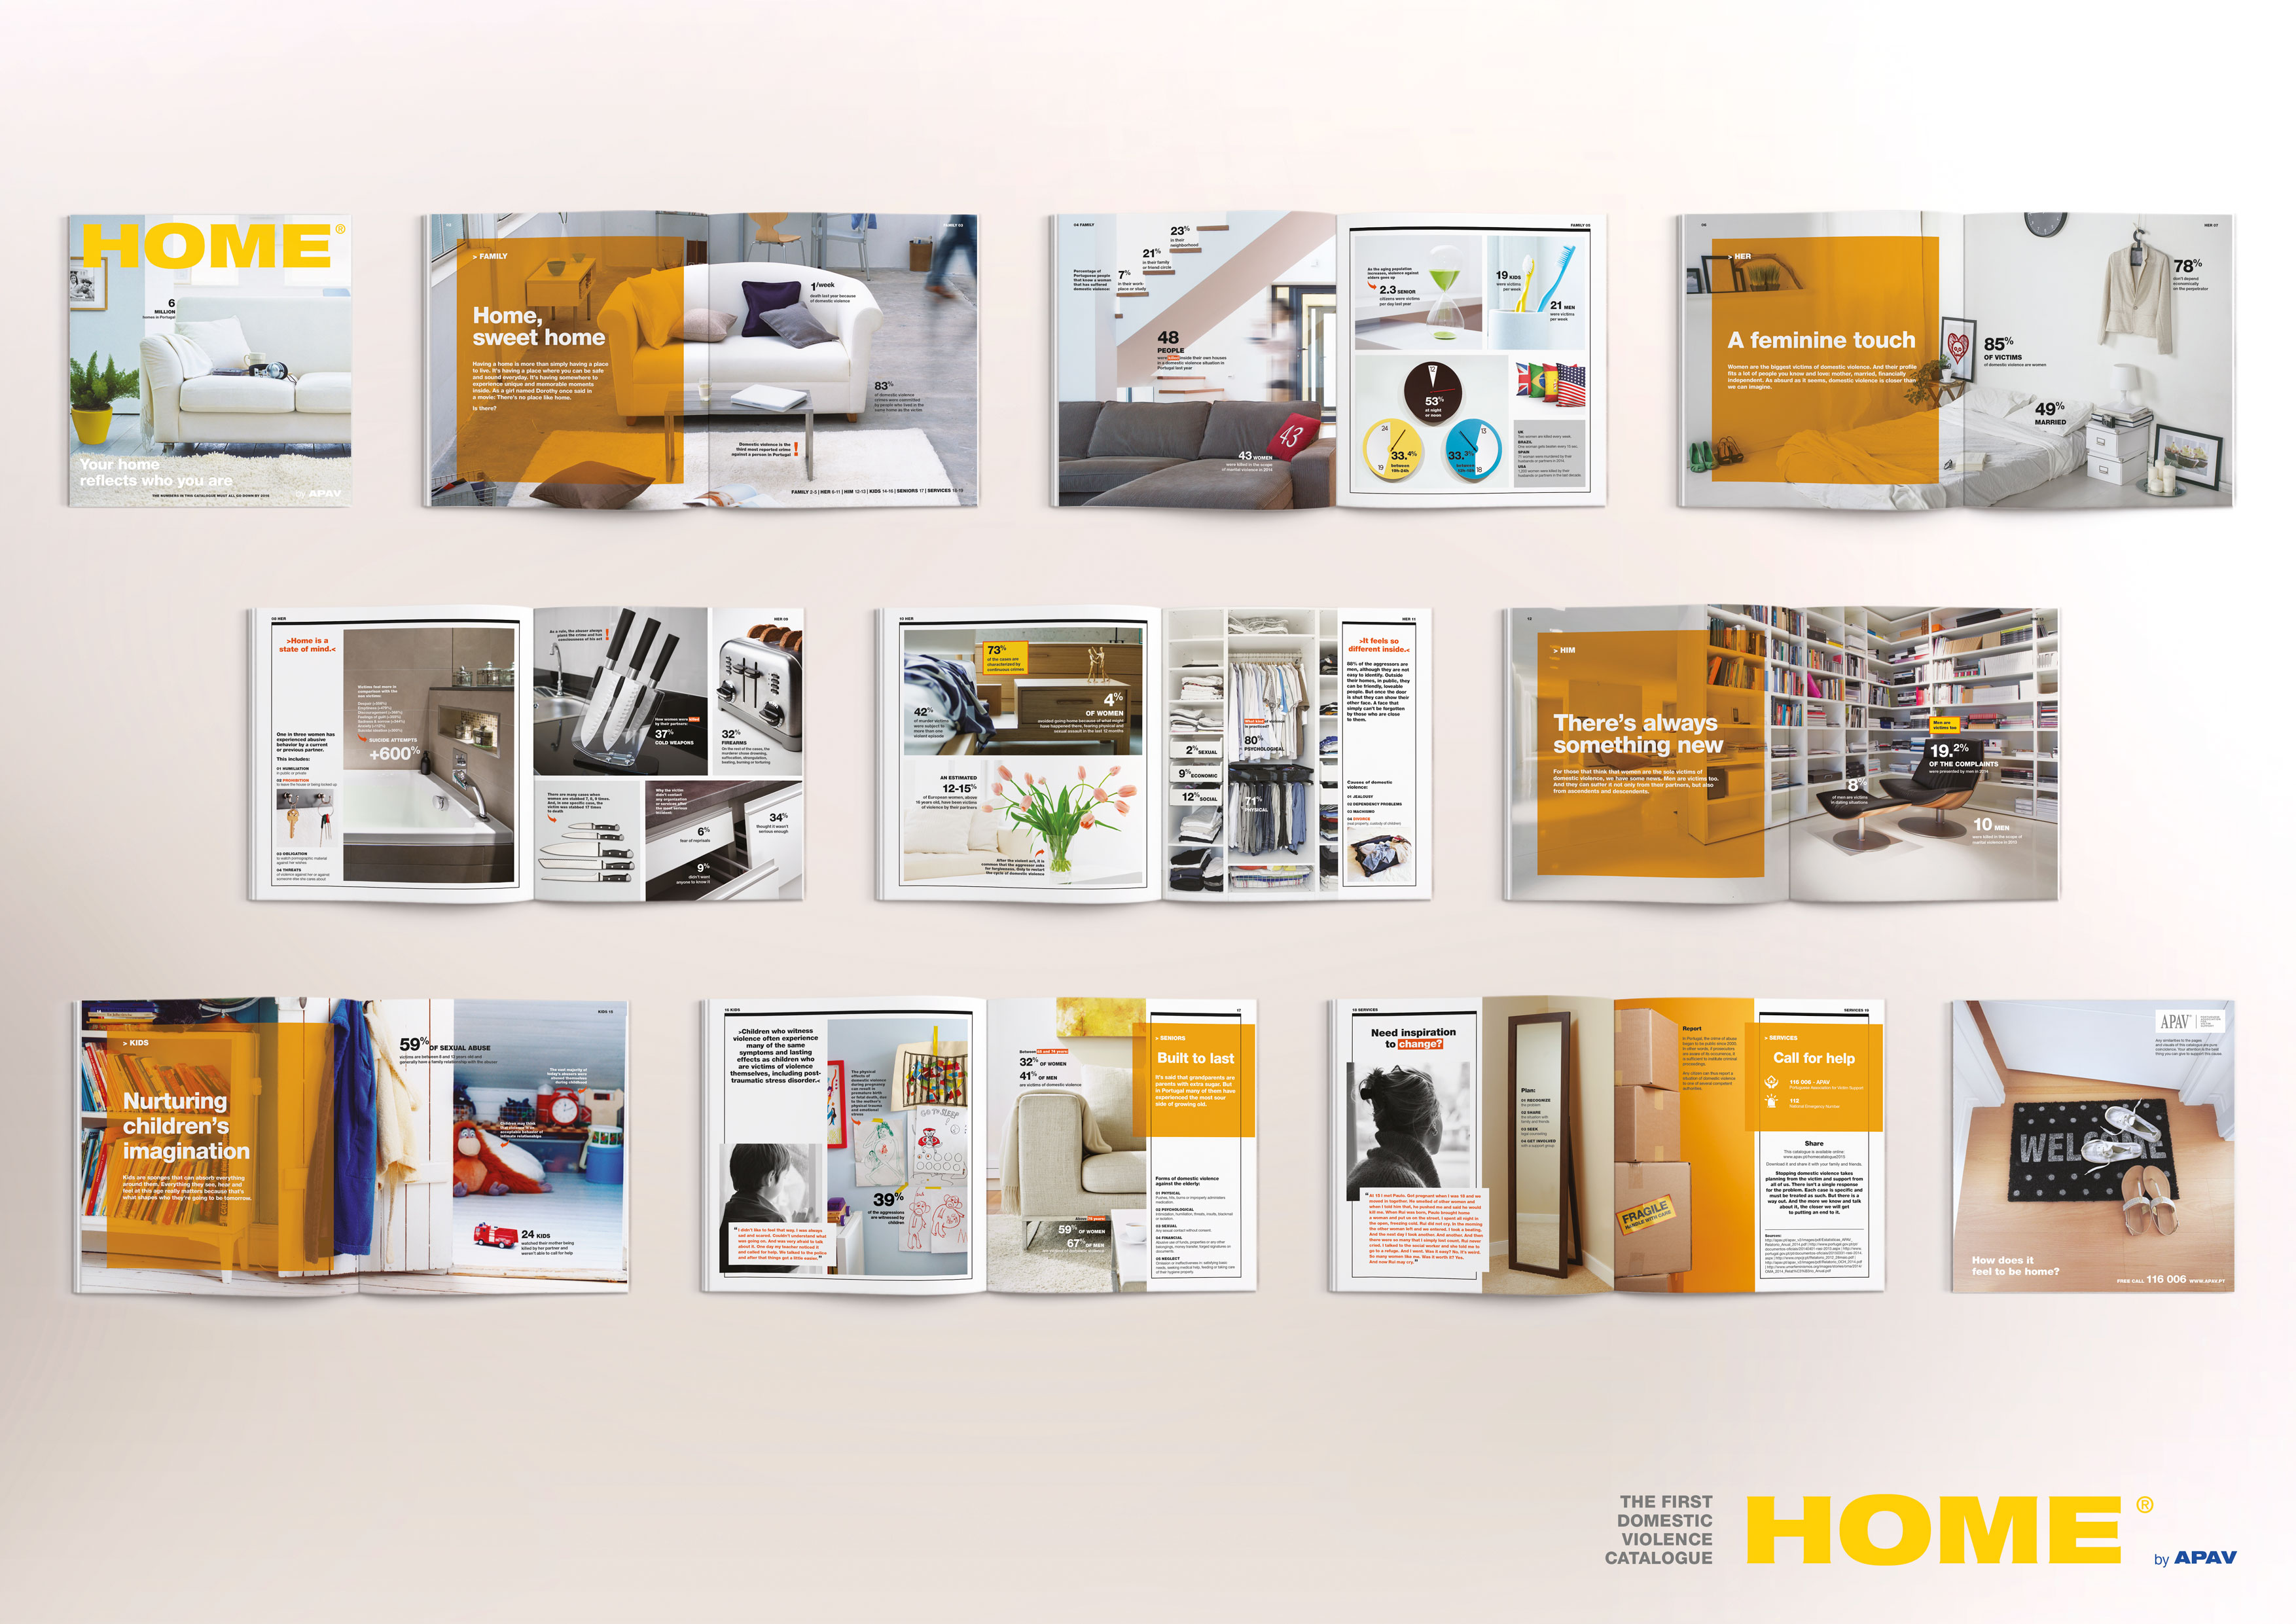 11 home_by_apav_board_catalogue - Pierrick Allan & Mathieu Chollet & Victor Afonso